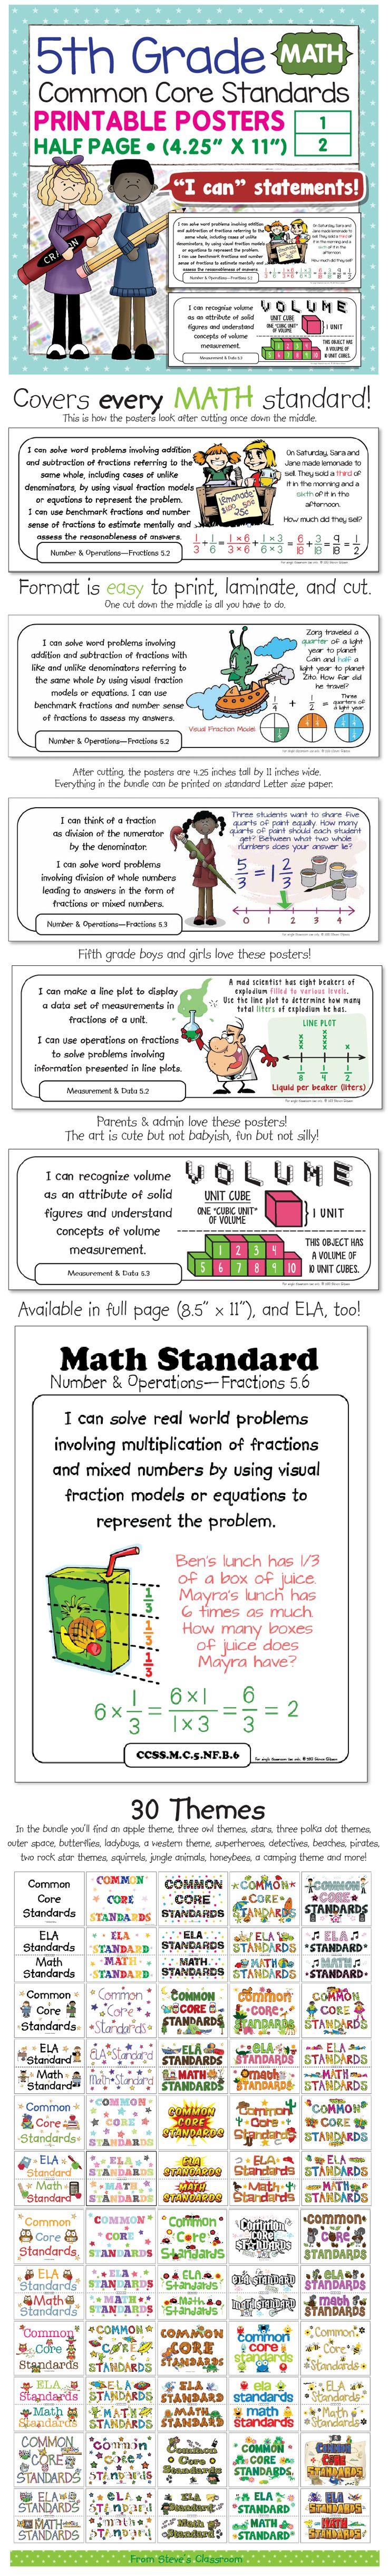 "I can statement posters for the fifth grade math Common Core Standards. Every standard is written as an ""I can"" statement and illustrated with a helpful example. IN addition to all the illustrated I can statements, there are heading cards in over thirty different themes, from apples to superheros! Highly rated and classroom proven."